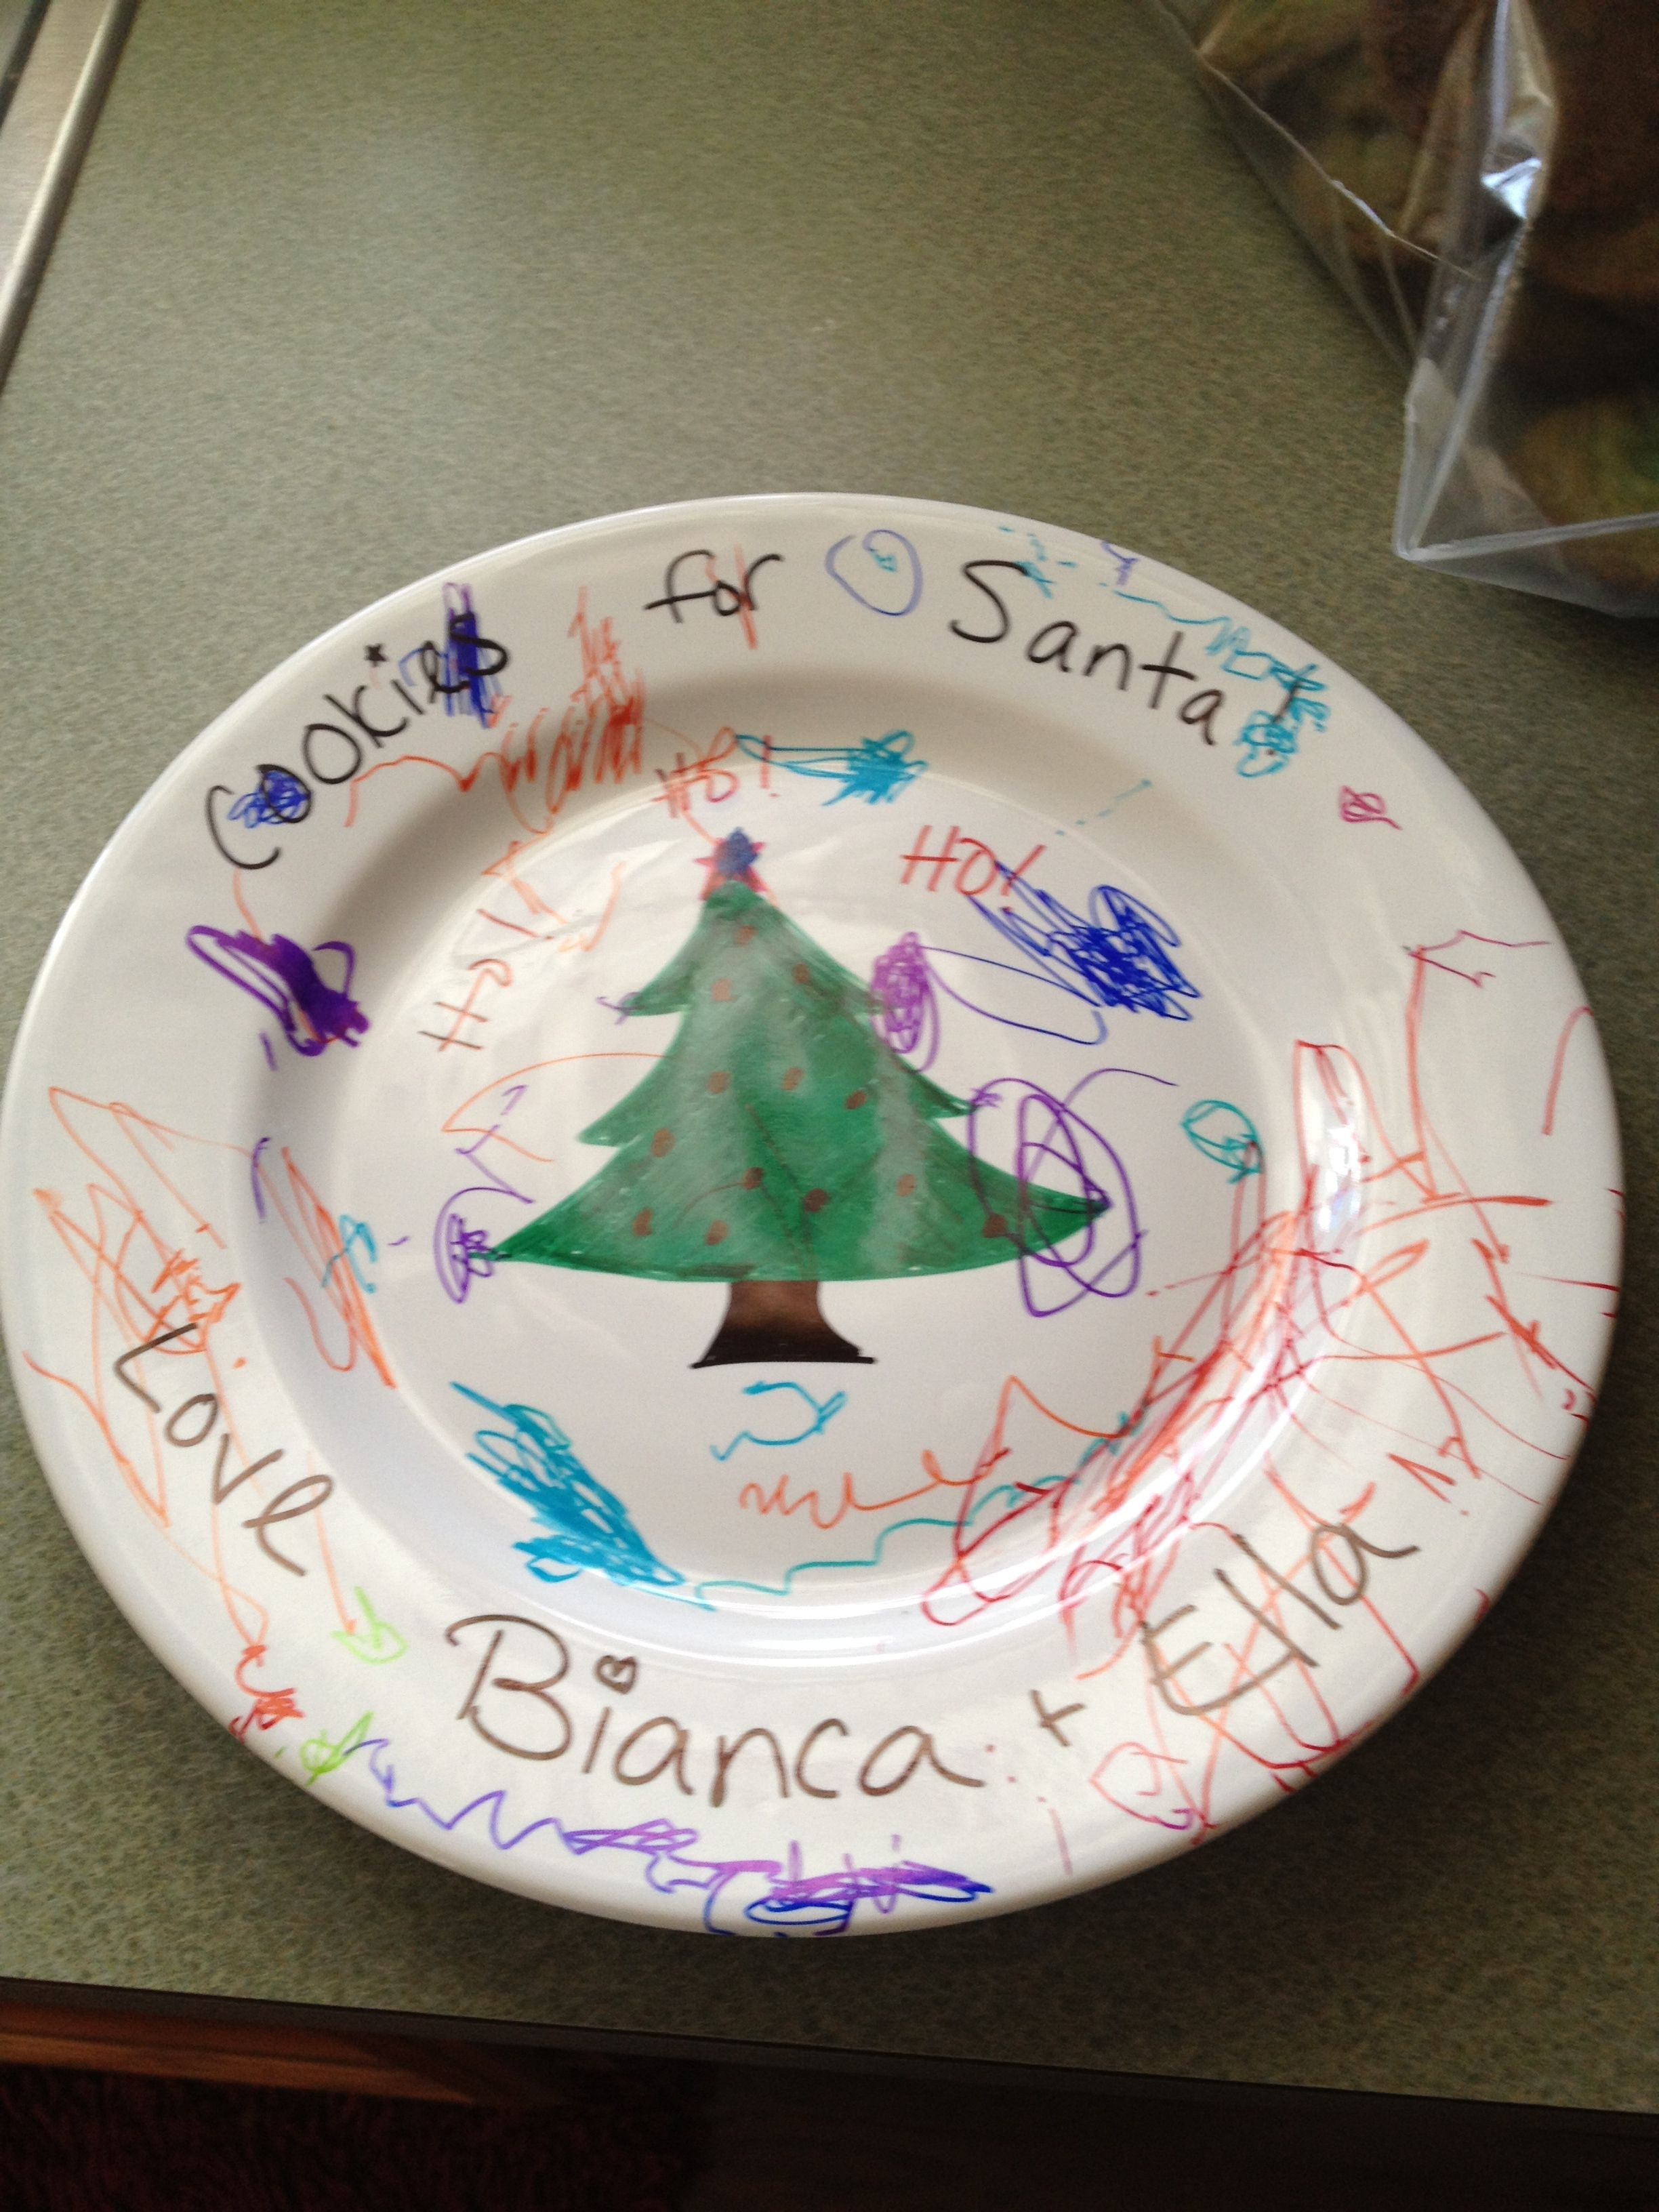 White ceramic plates for crafts - Cookies For Santa Plate Get A White Ceramic Plate Sharpie Markers Color And